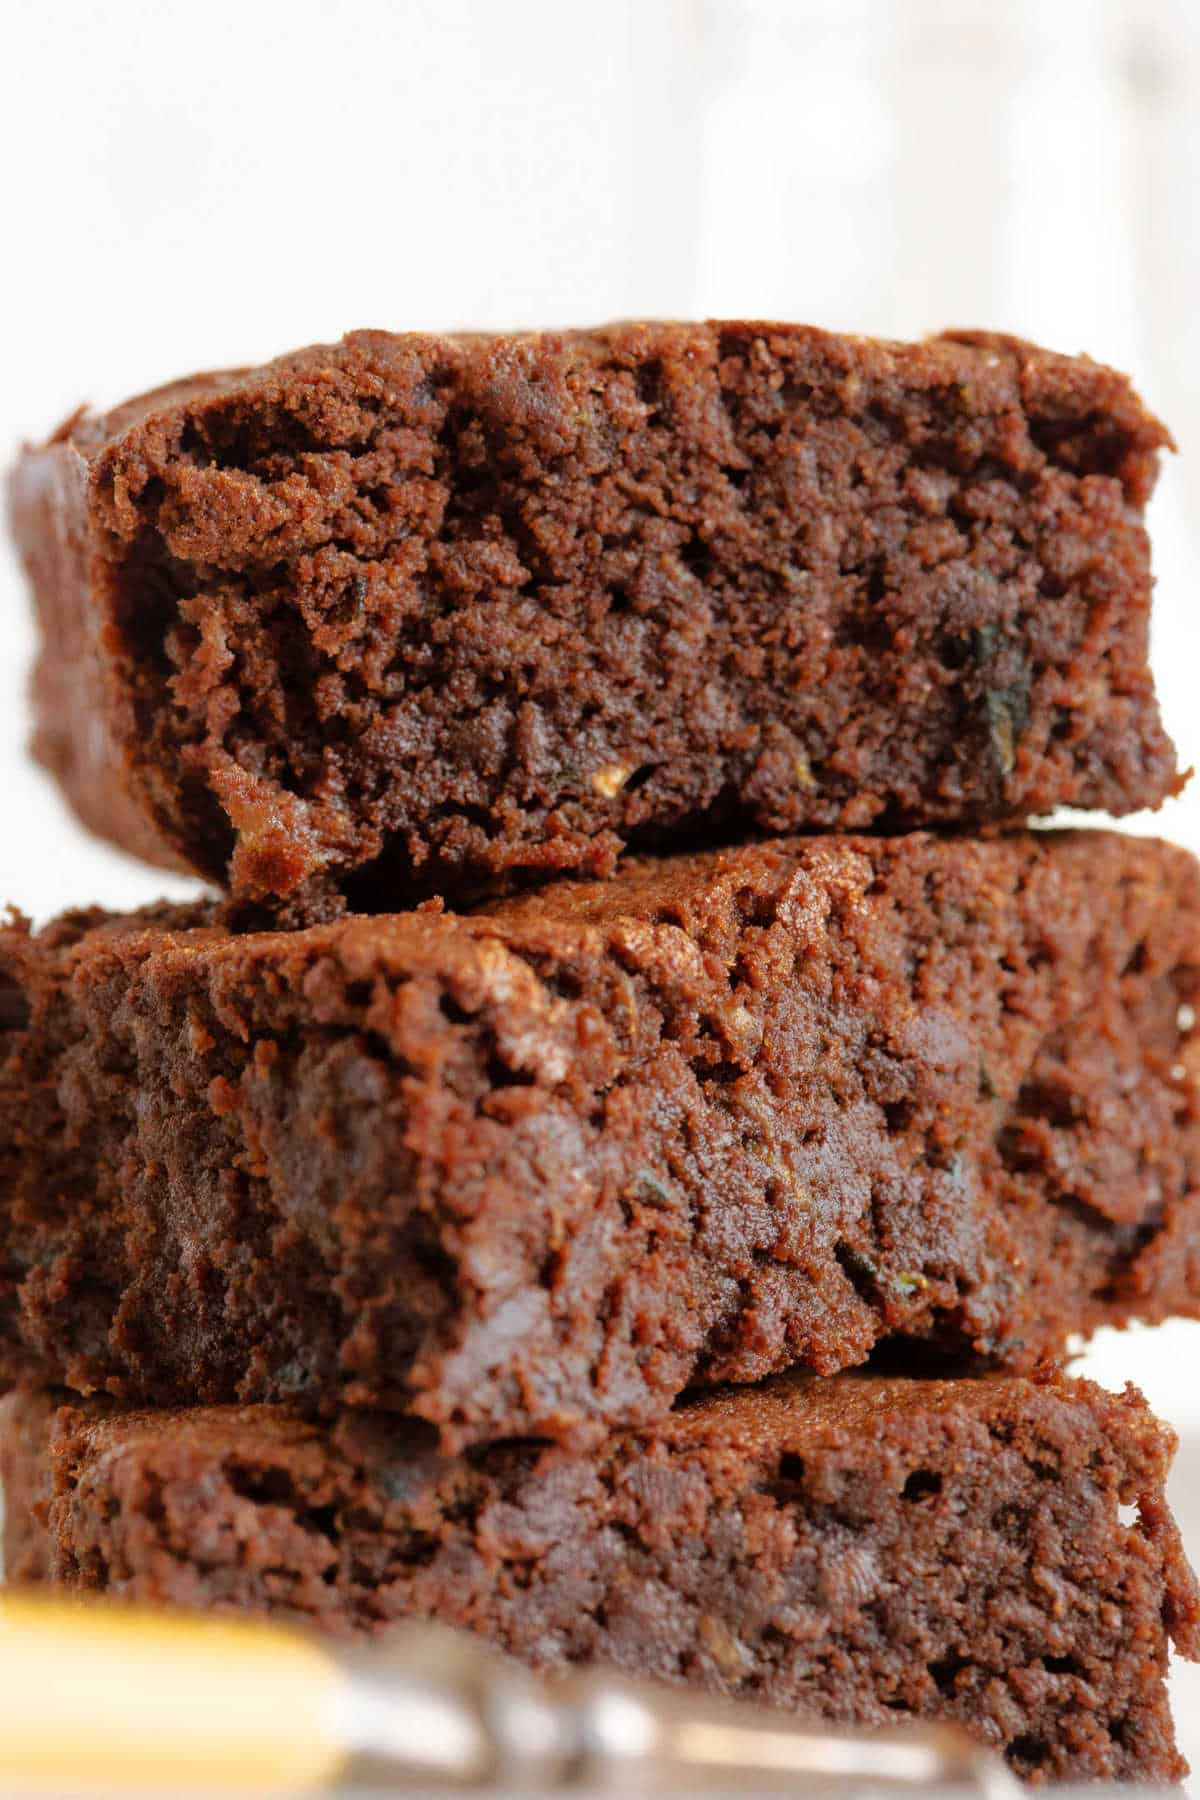 A close up photo of a chocolate courgette brownie.